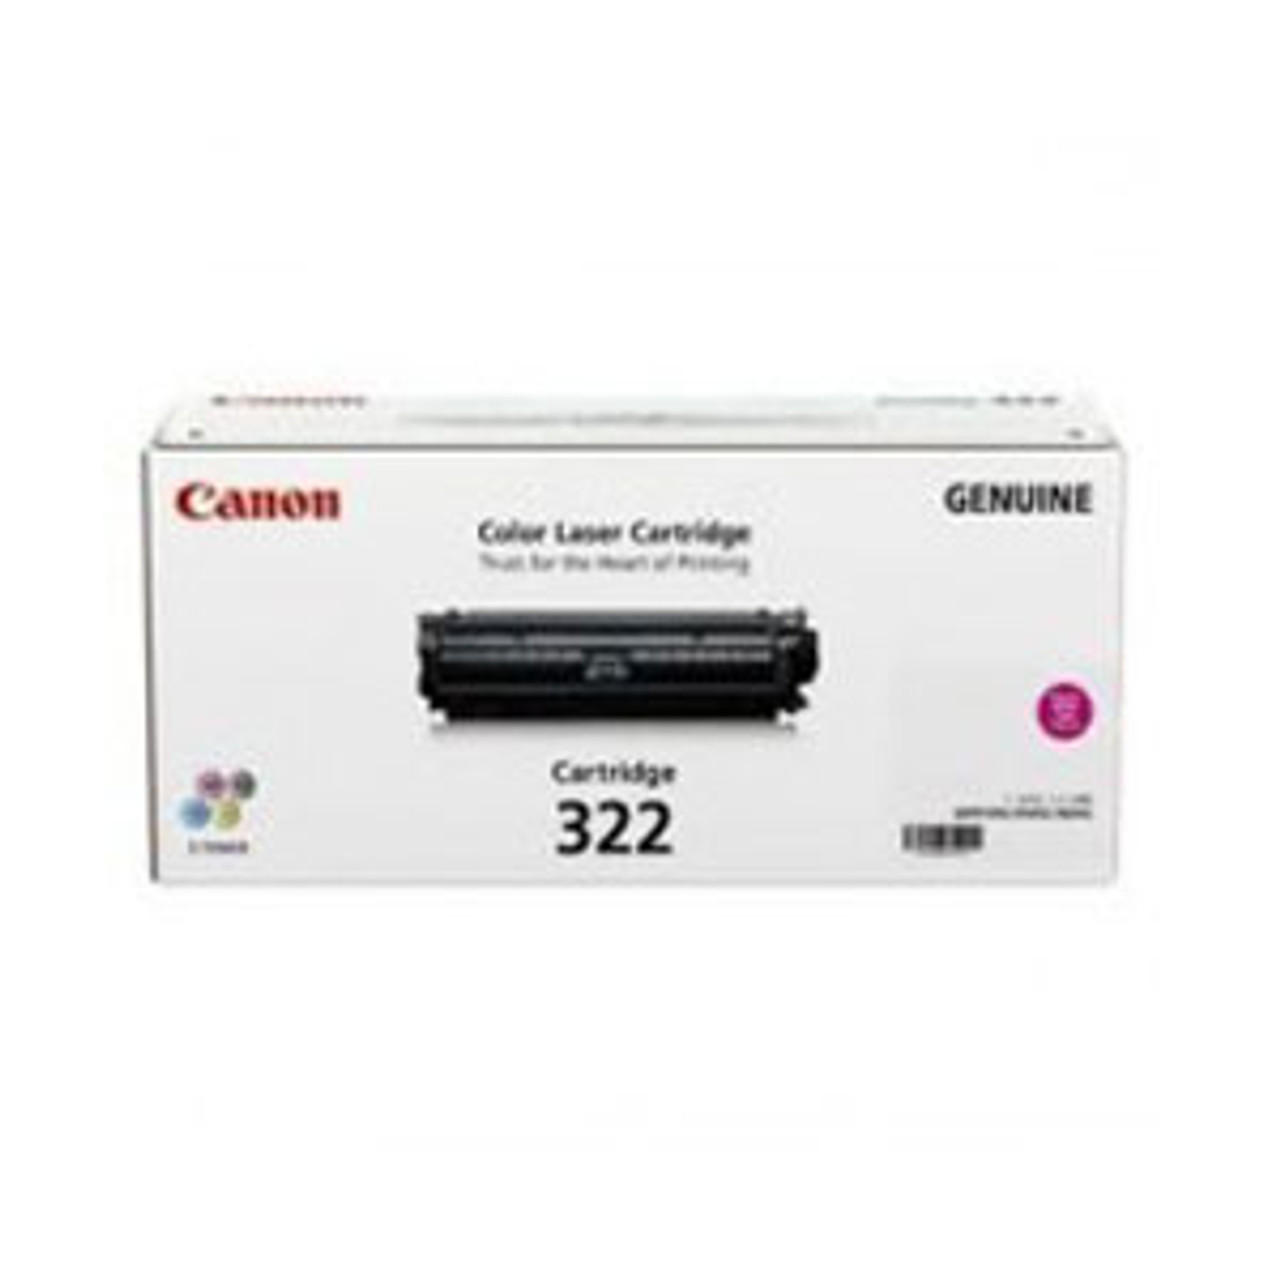 Image for Canon 332 Magenta Toner Cartridge 6,400 pages Magenta CX Computer Superstore